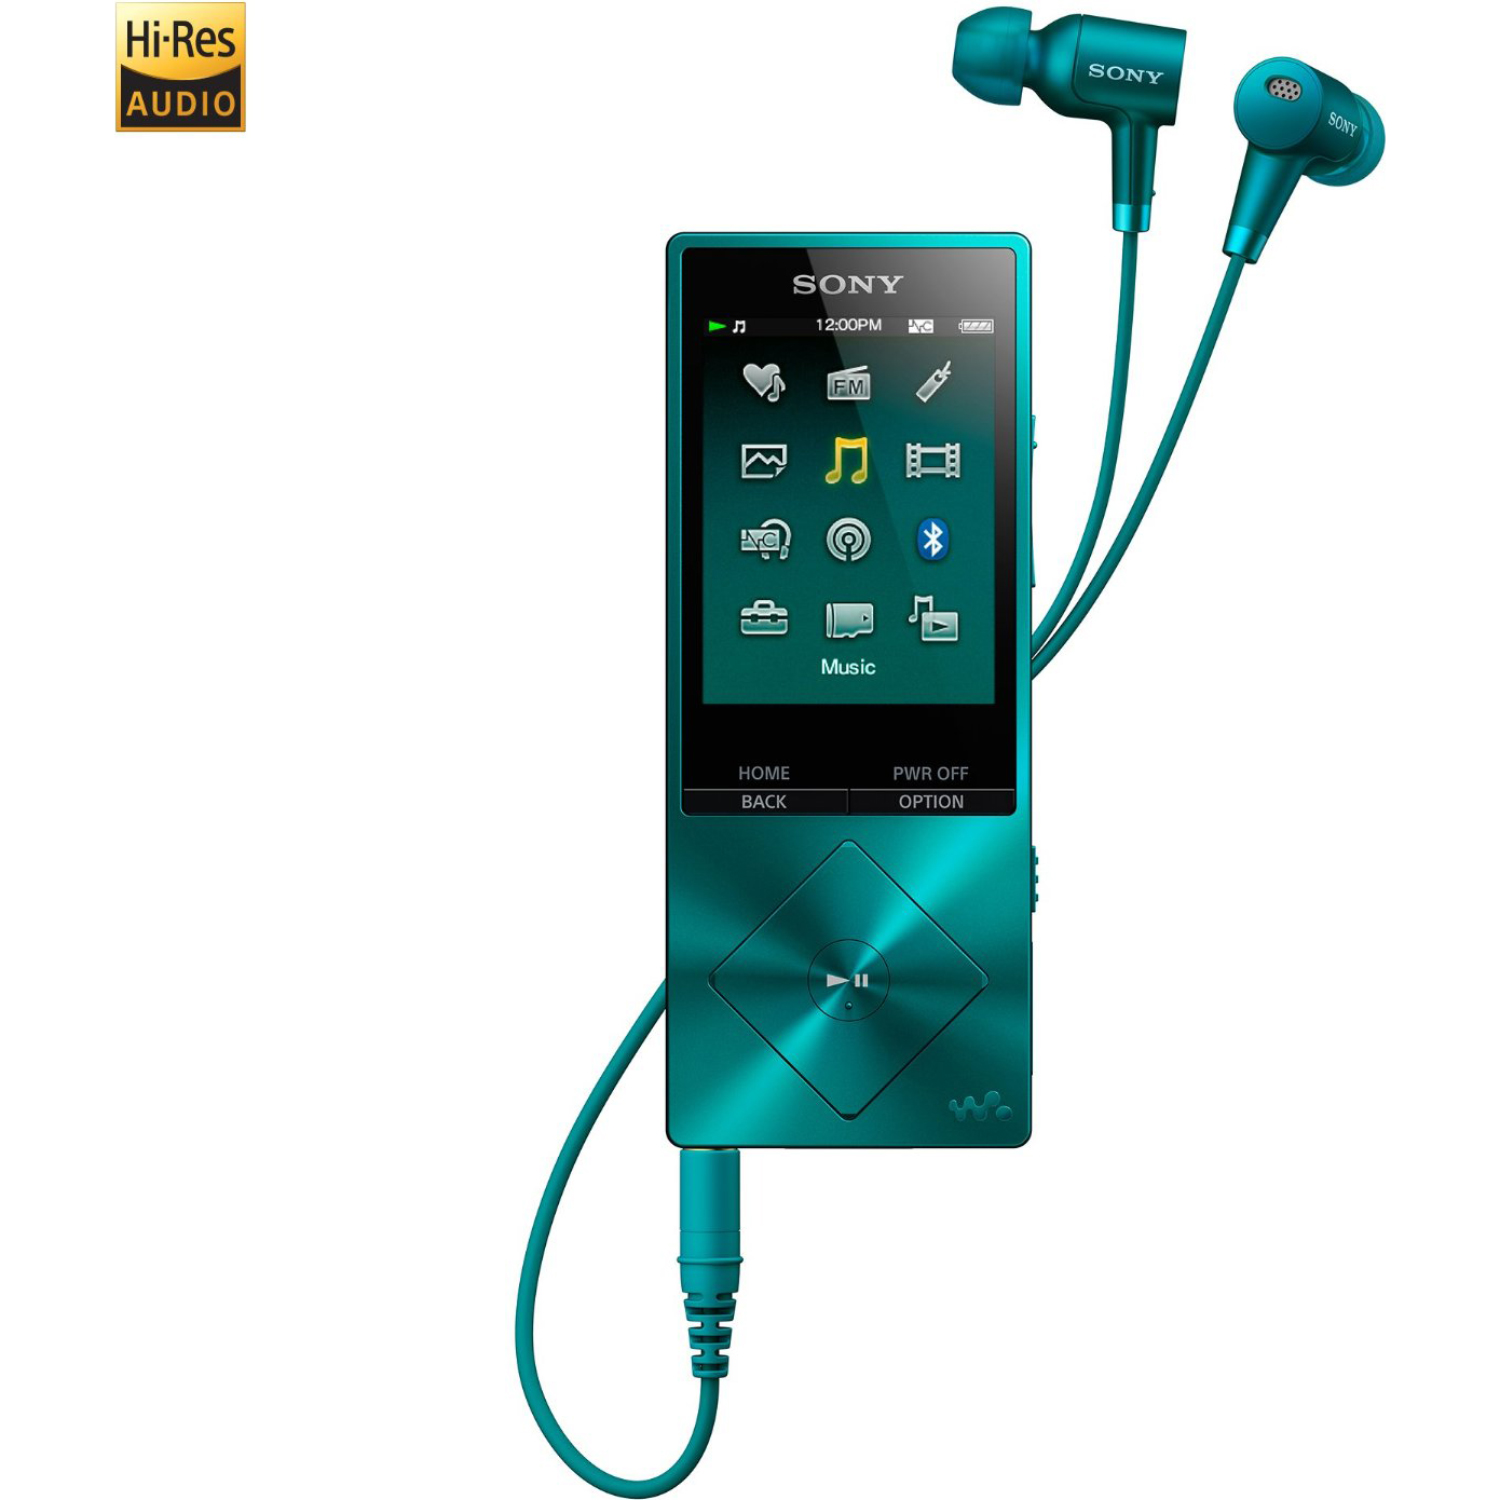 Sony NWA26HNLM Walkman NW-A20 Series 32GB* Hi-Res Digital Audio Player Viridian Blue